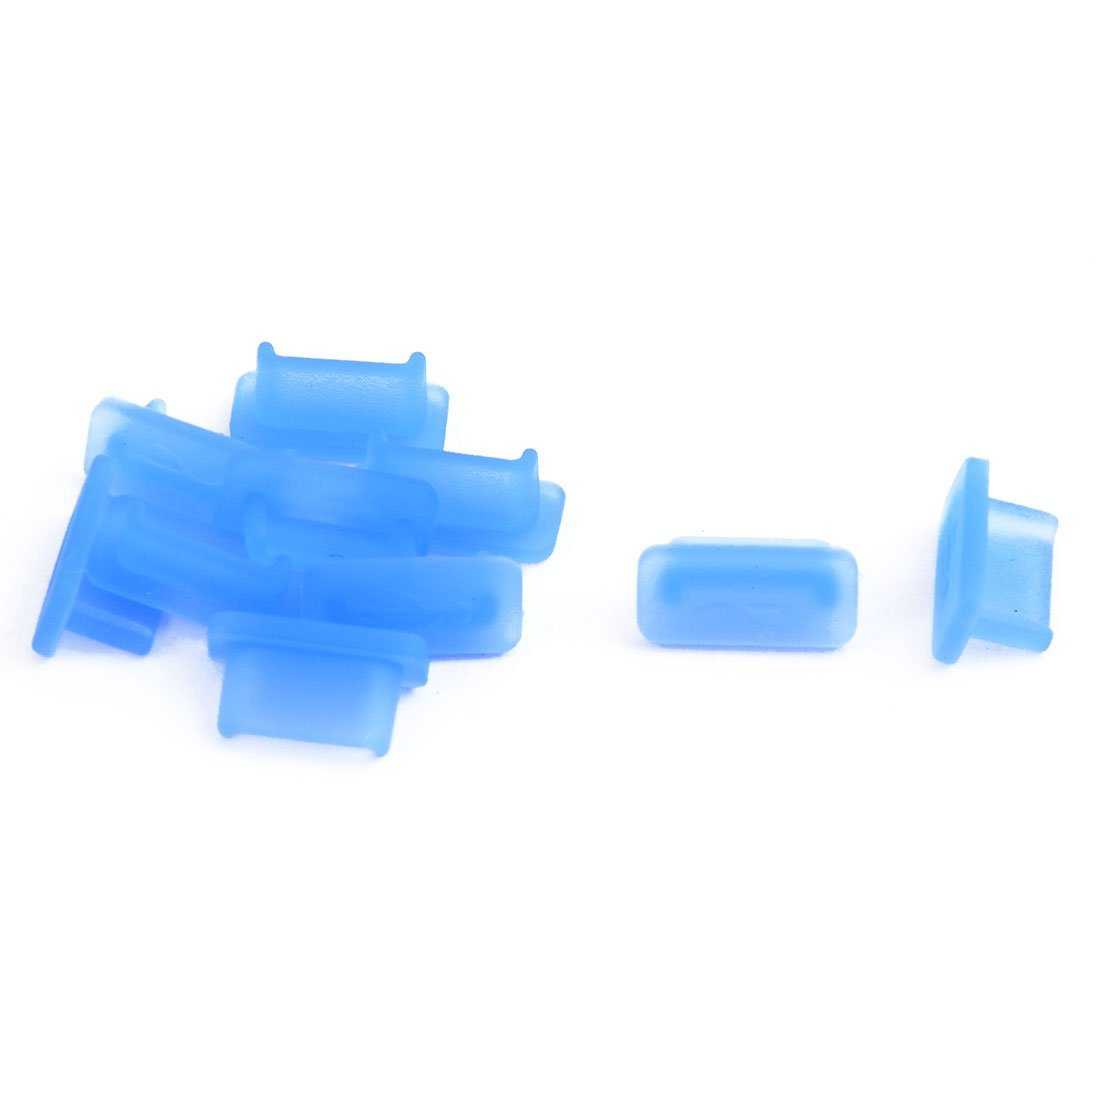 uxcell PC Phone Silicone Female USB Port Cover Cap Anti Dust Protector Blue 20 PCS